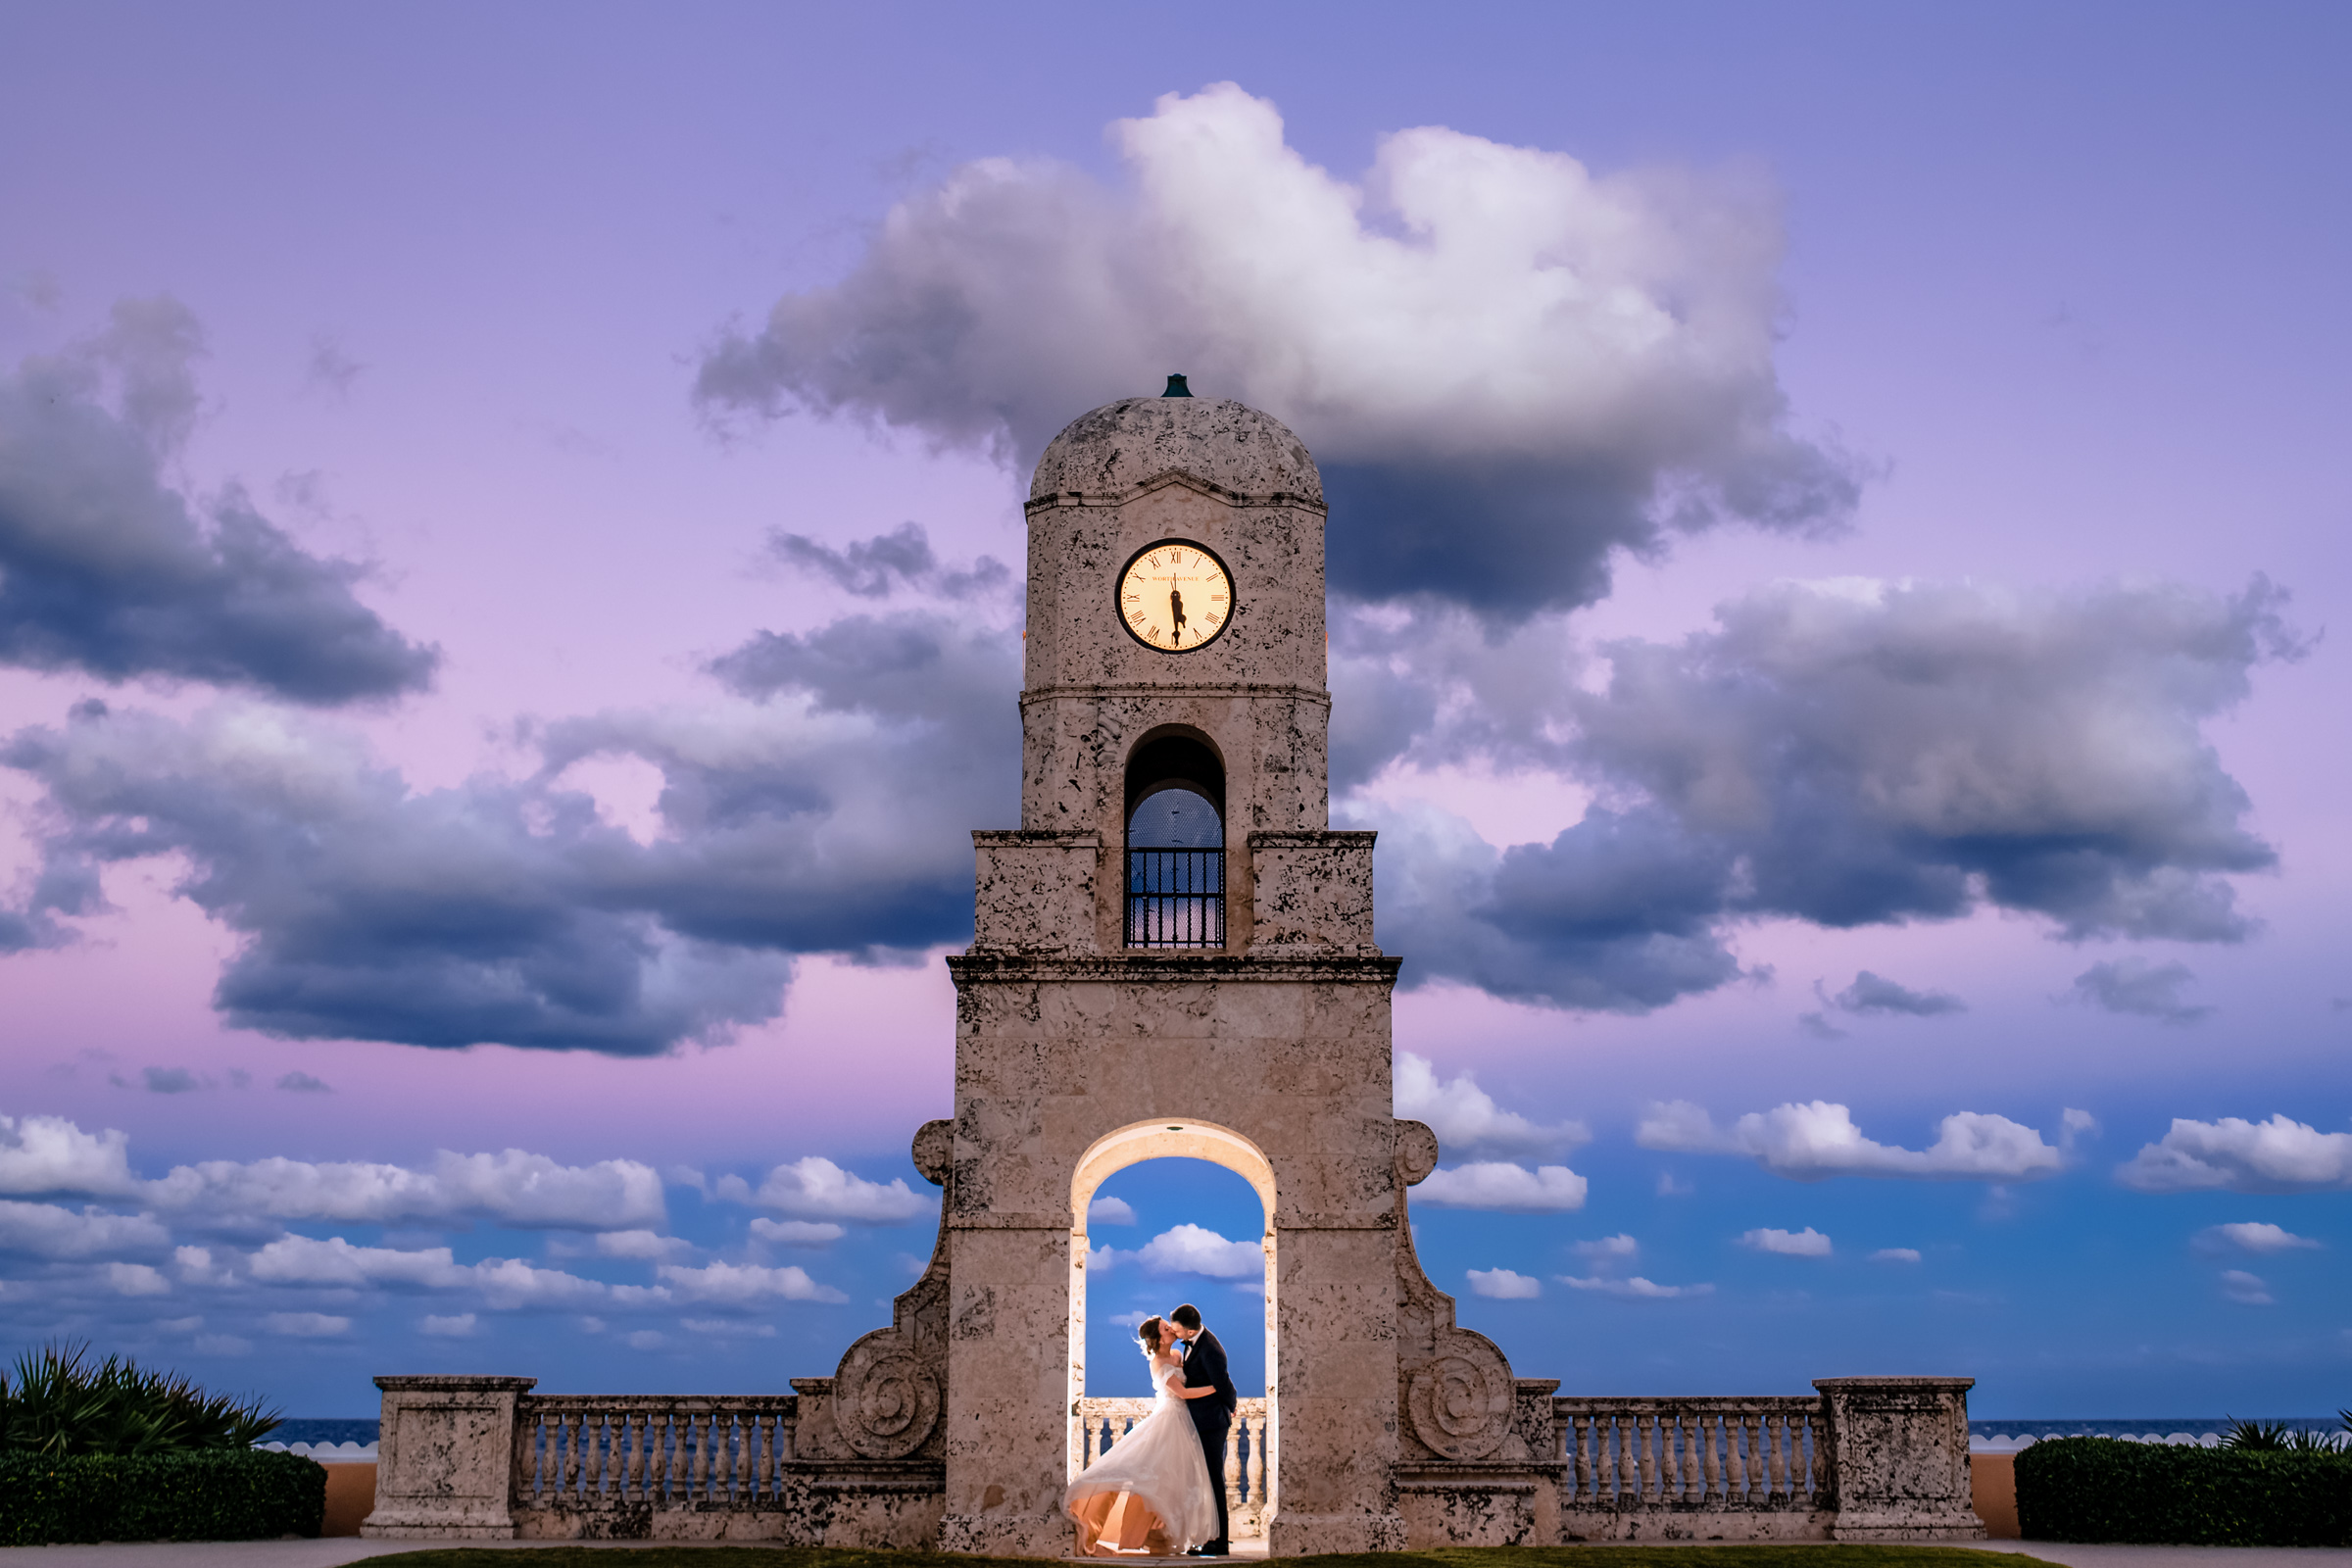 portrait-of-bride-and-groom-kissing-under-clock-tower-during-pink-sunset-michael-freas-photography-north-carolina